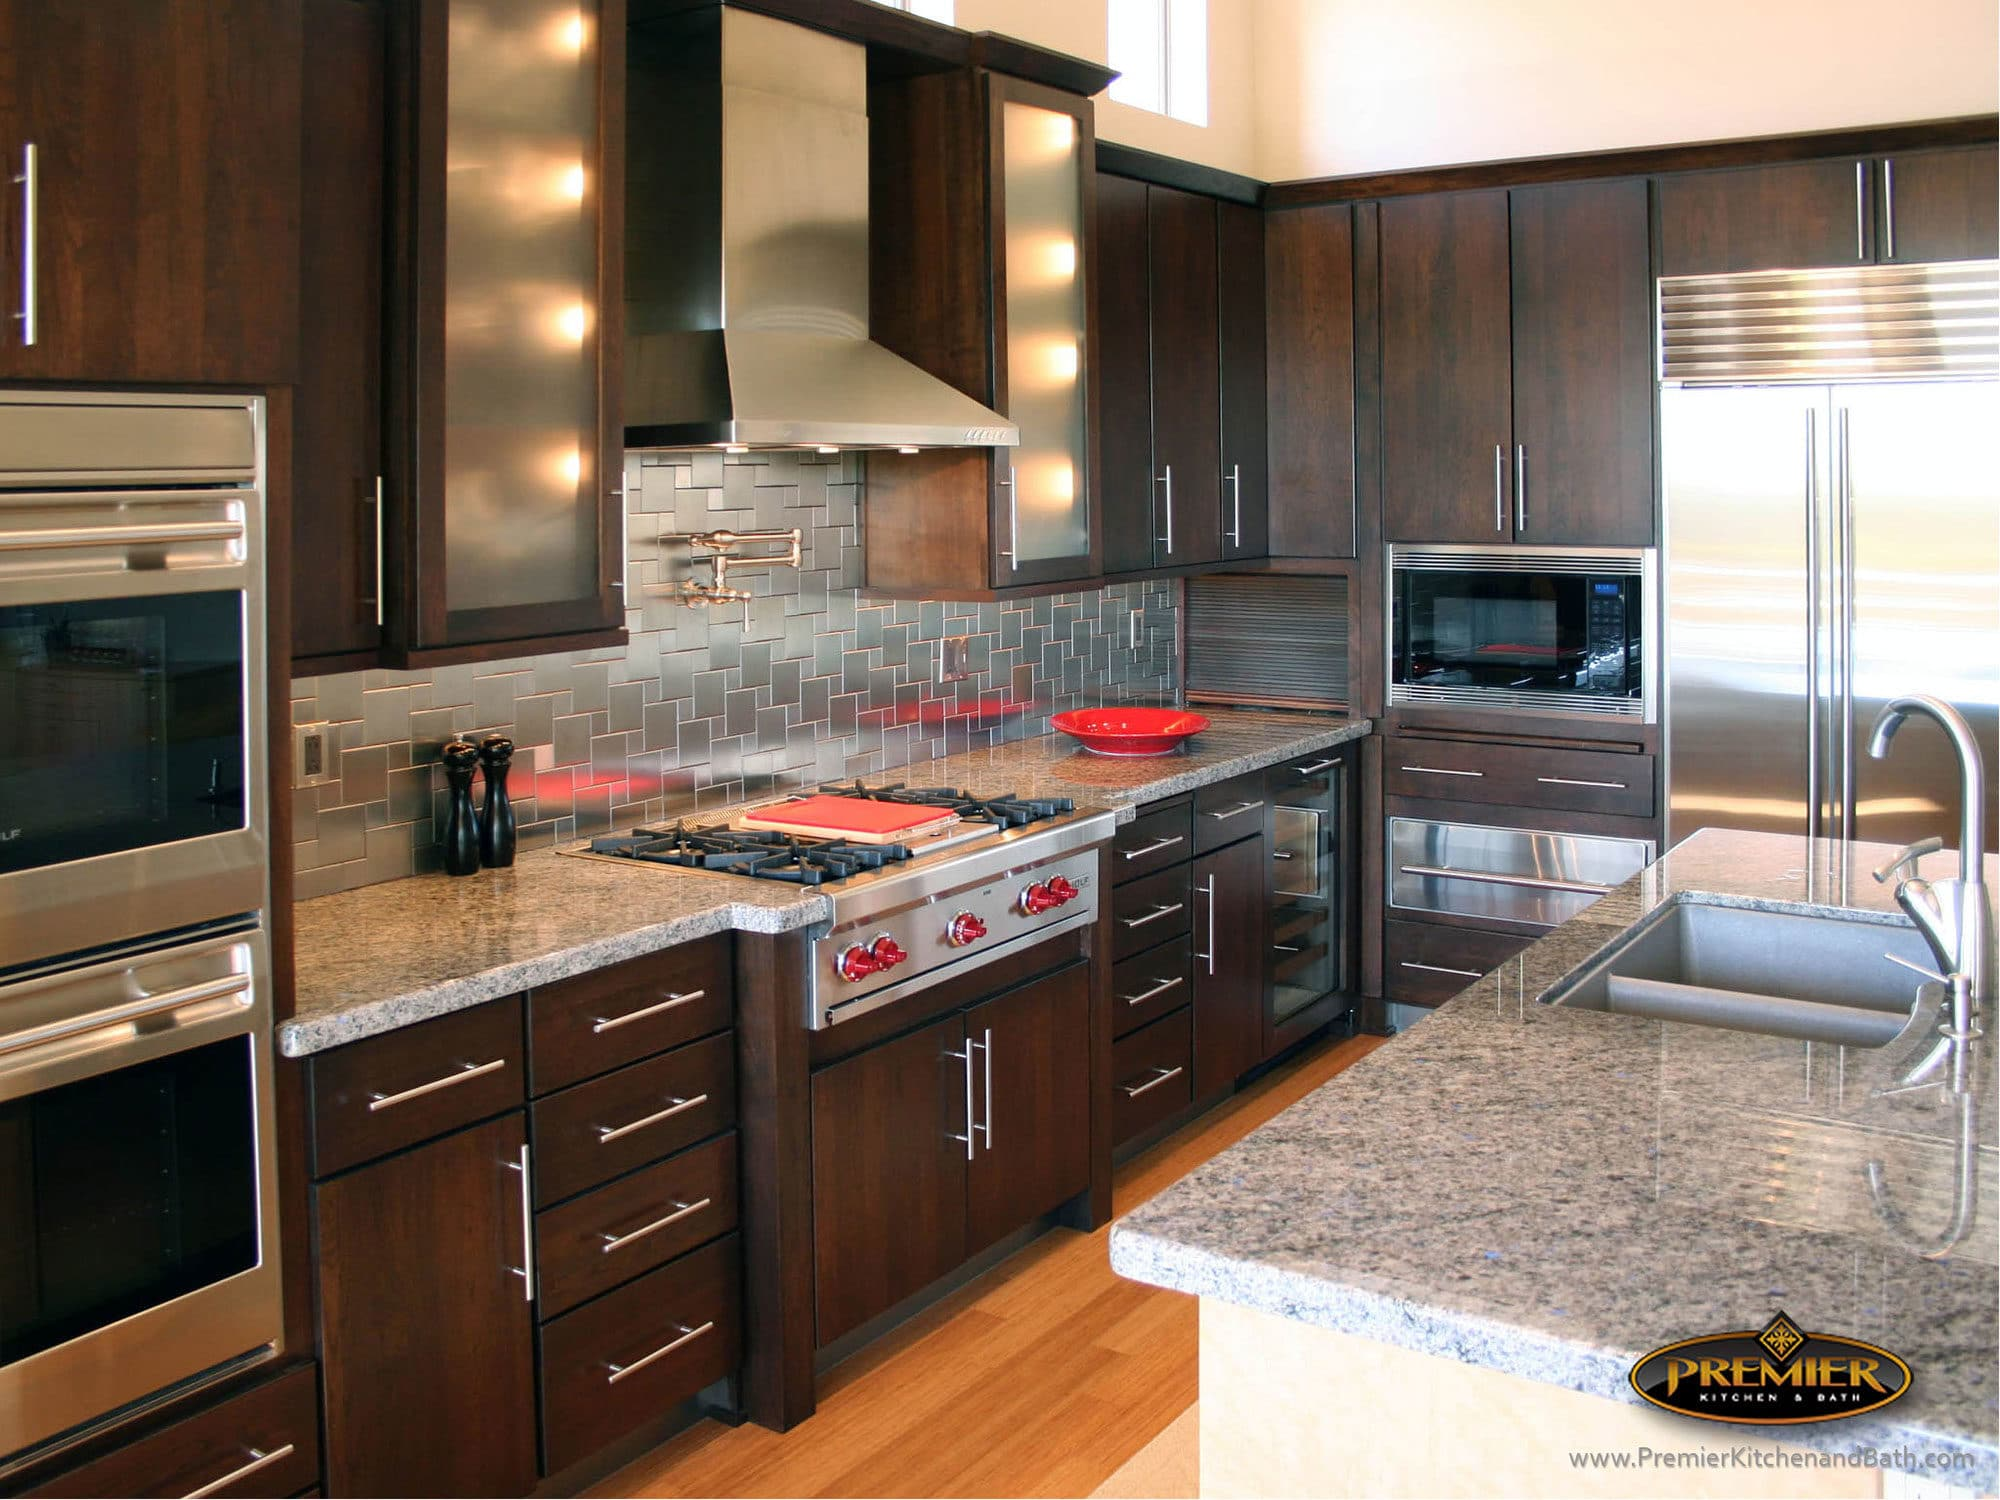 Kitchen Remodel Paradise Valley Kitchen Remodel Scottsdale Kitchen Remodel  Paradise Valley Az   Kitchen Remodel Scottsdale